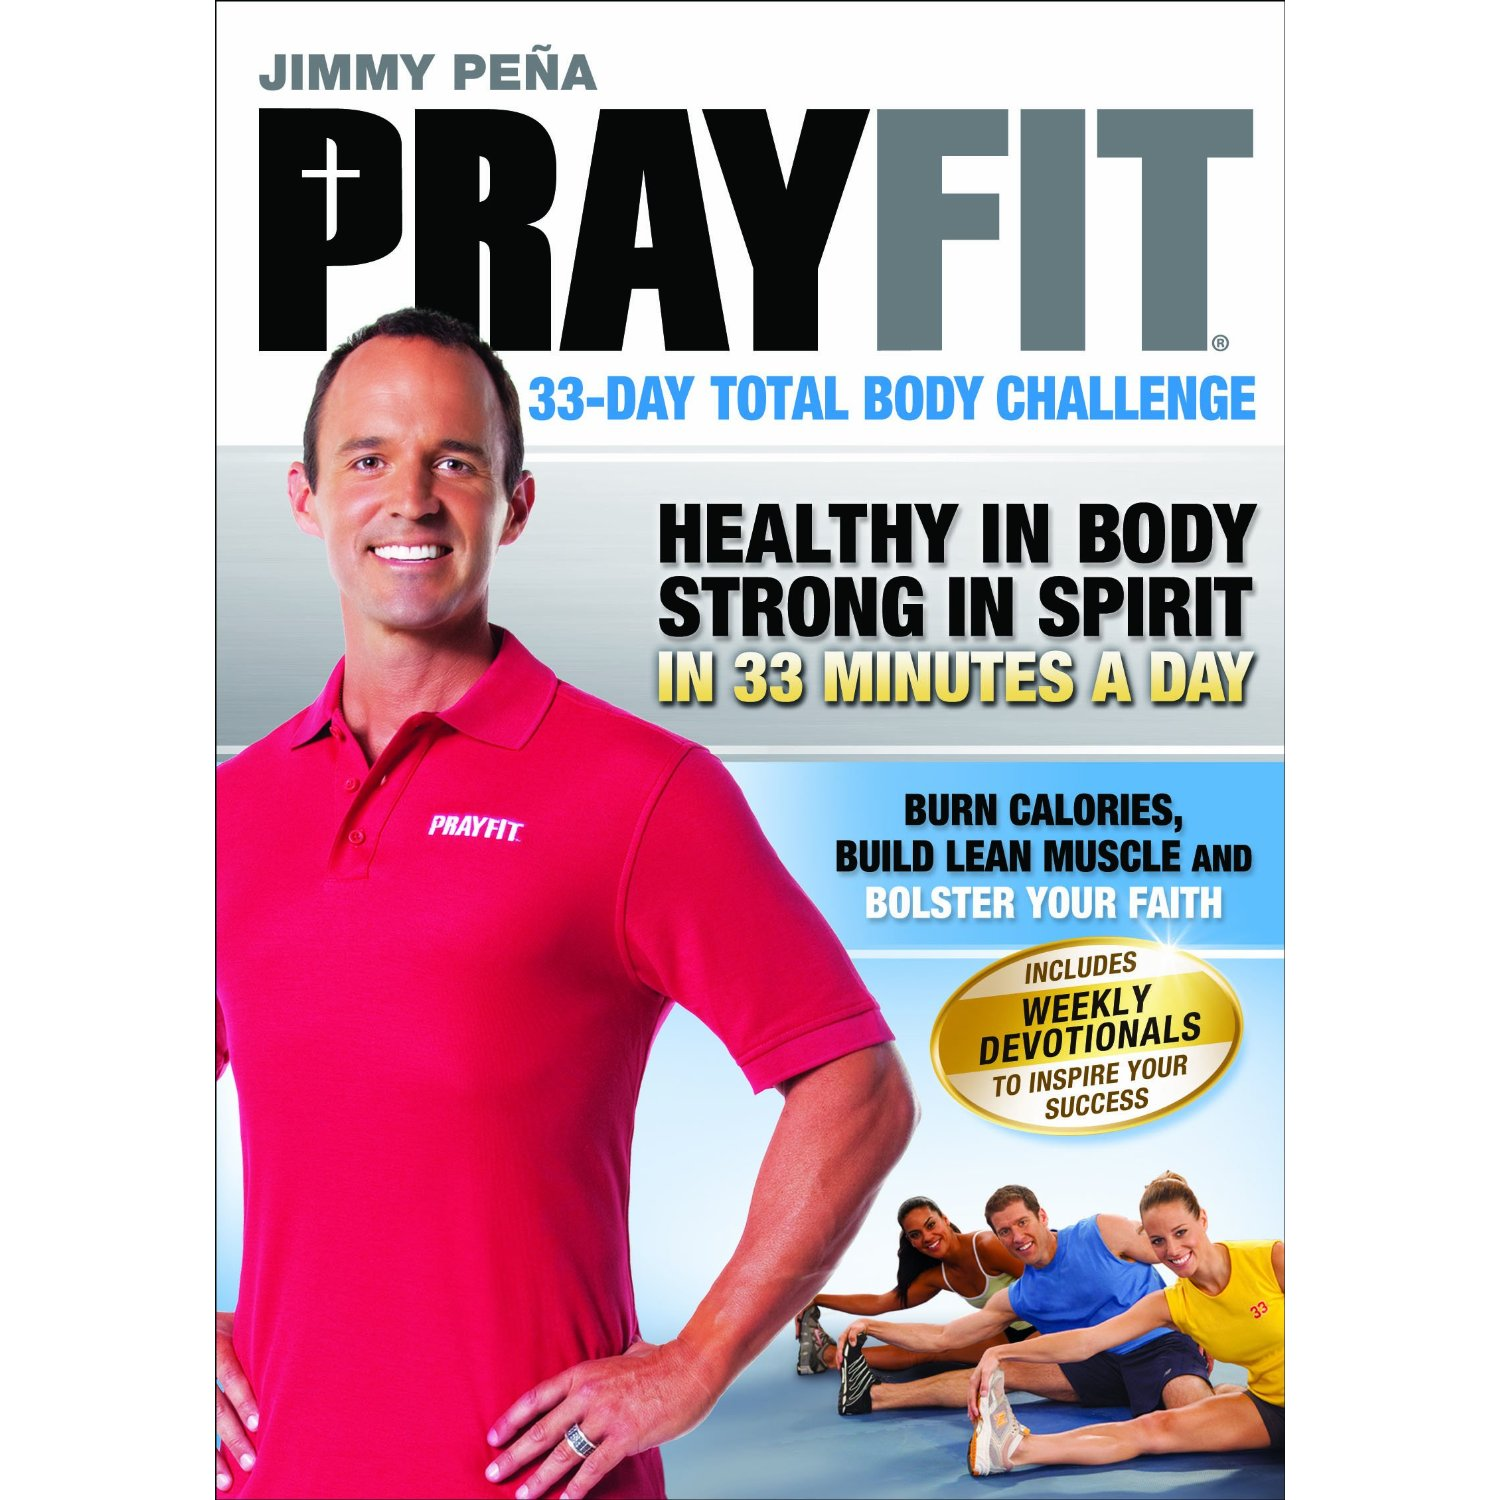 jimmy-pena-prayfit-spry.jpg